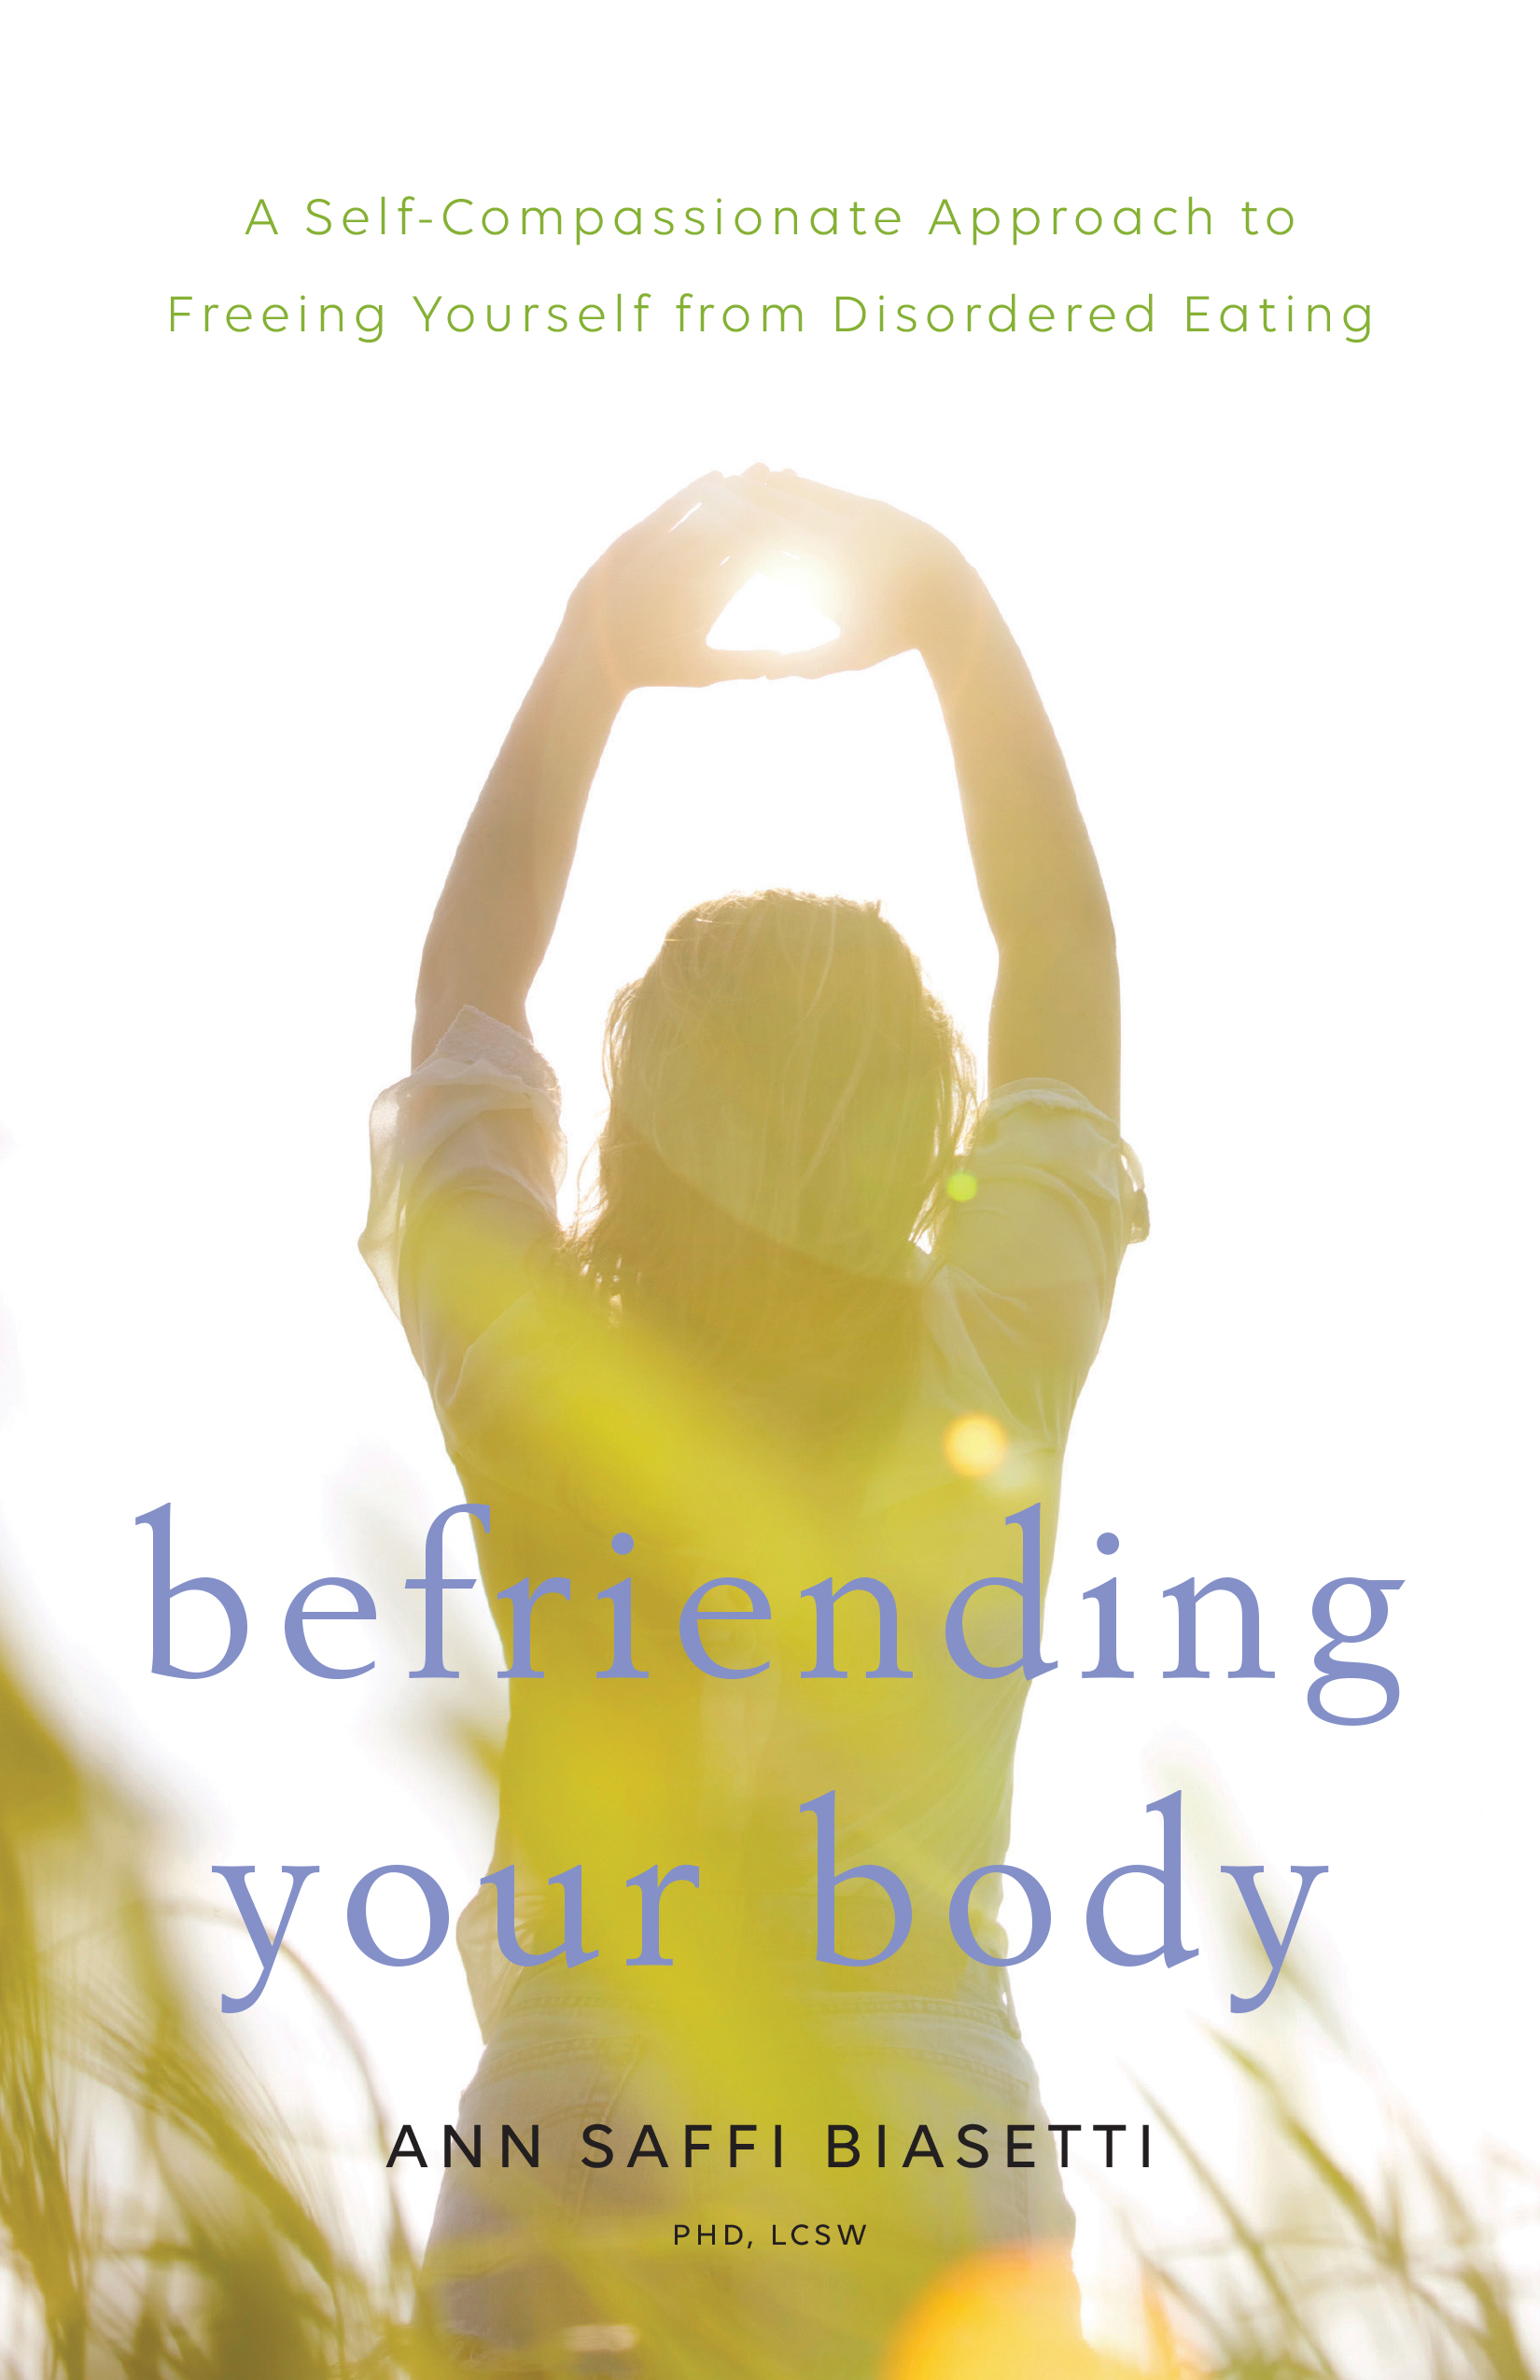 Ann's latest book,  Befriending Your Body: A Self-Compassionate Approach to Freeing Yourself From Disordered Eating  (Shambala Publications, 2018)